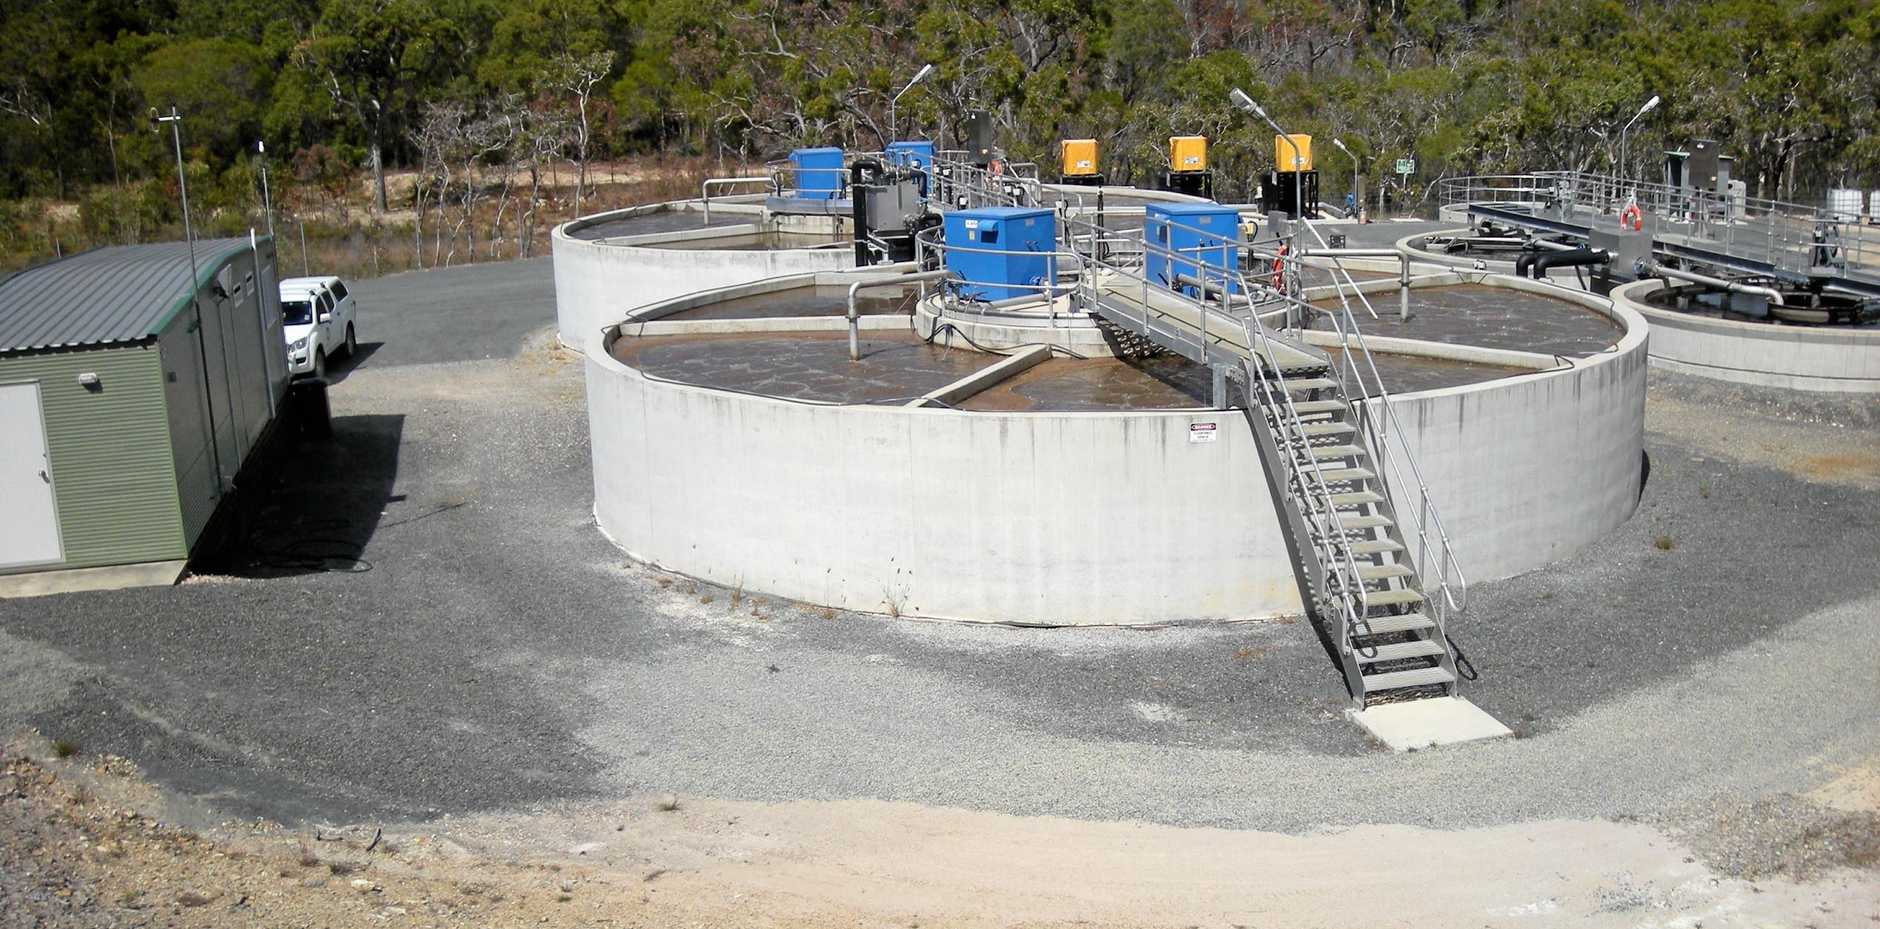 GLADSTONE Regional Council is calling for assistance from the Agnes Water and Seventeen Seventy communities to help address dangerous driving and anti-social behaviour happening at its Agnes Waste Water Treatment Plant site.